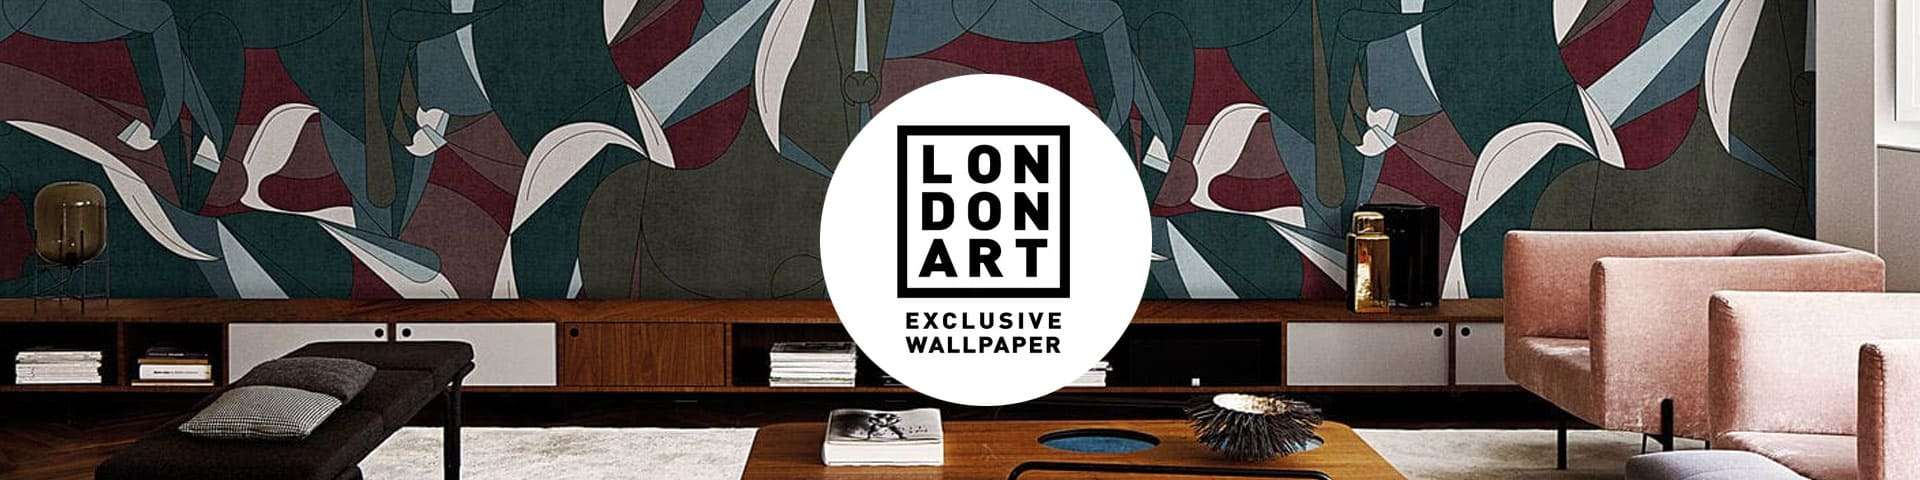 LondonArt wallpaper behang | LondonArt behang